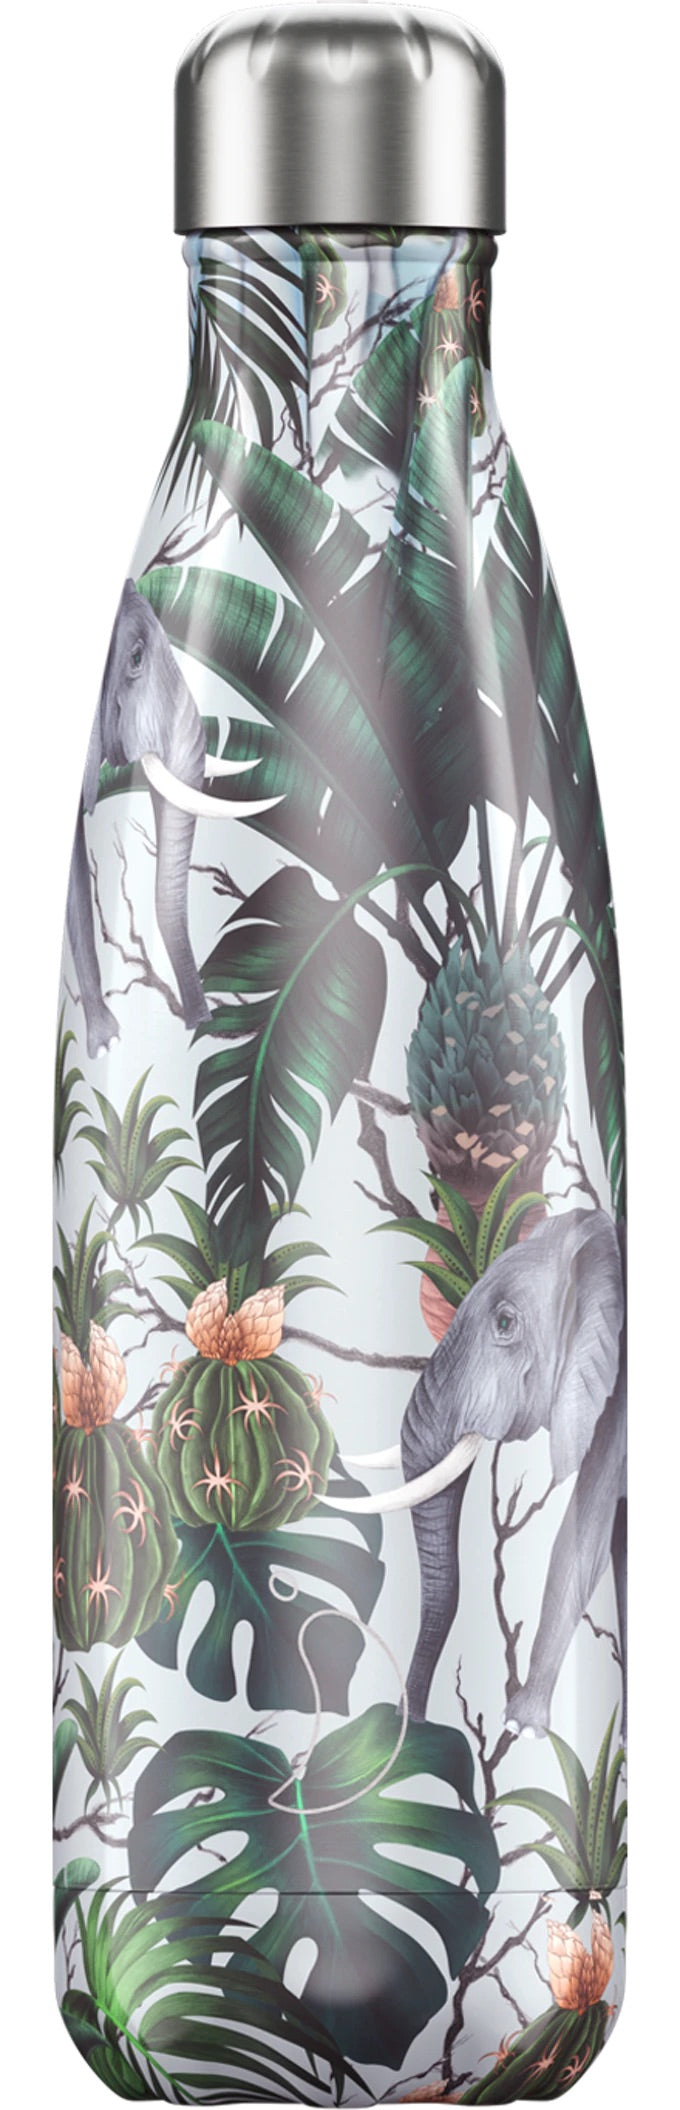 Tropical edition elephant Chilly bottle - 750ml